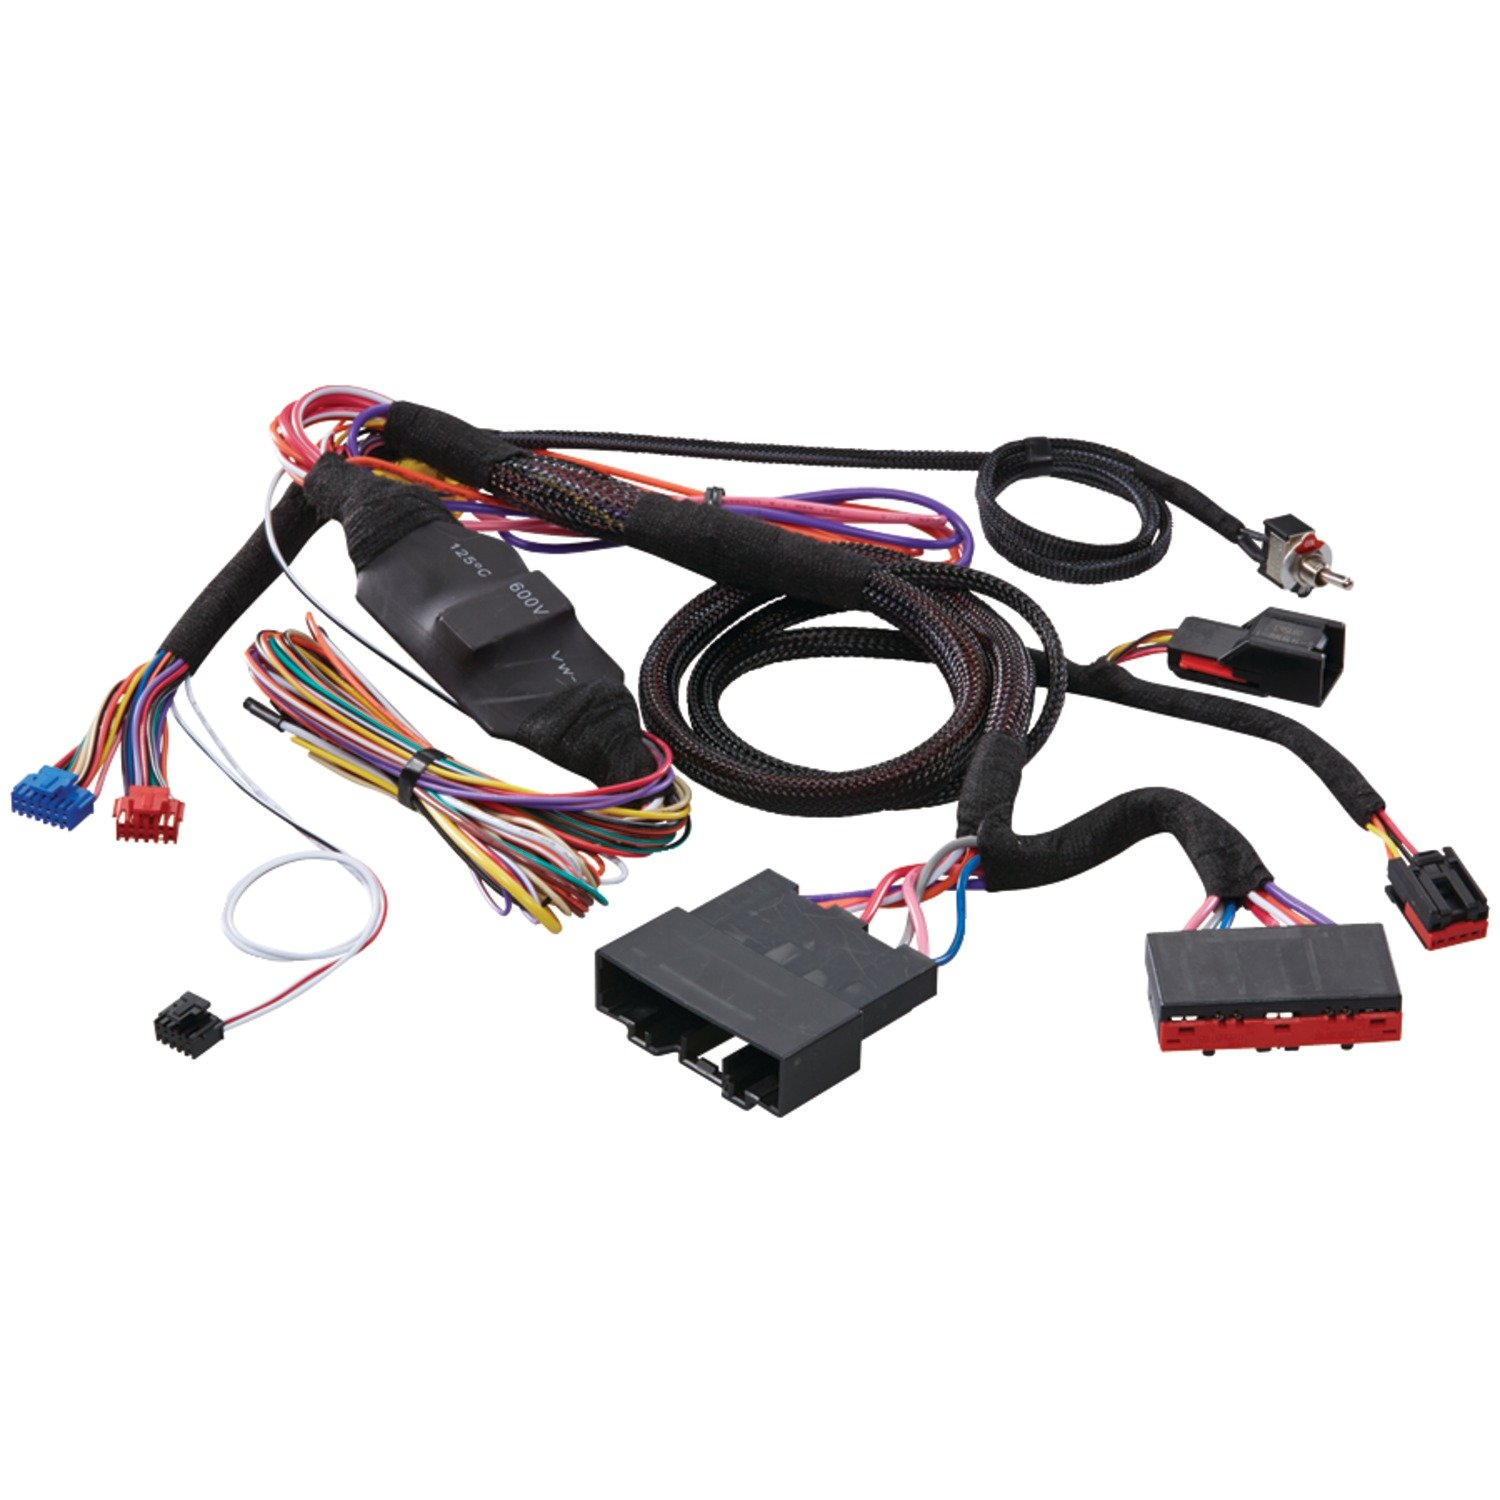 Directed Electronics Thfd1 Ford T Harness Solution For Star Wiring Dball Dball2 Cell Phones Accessories